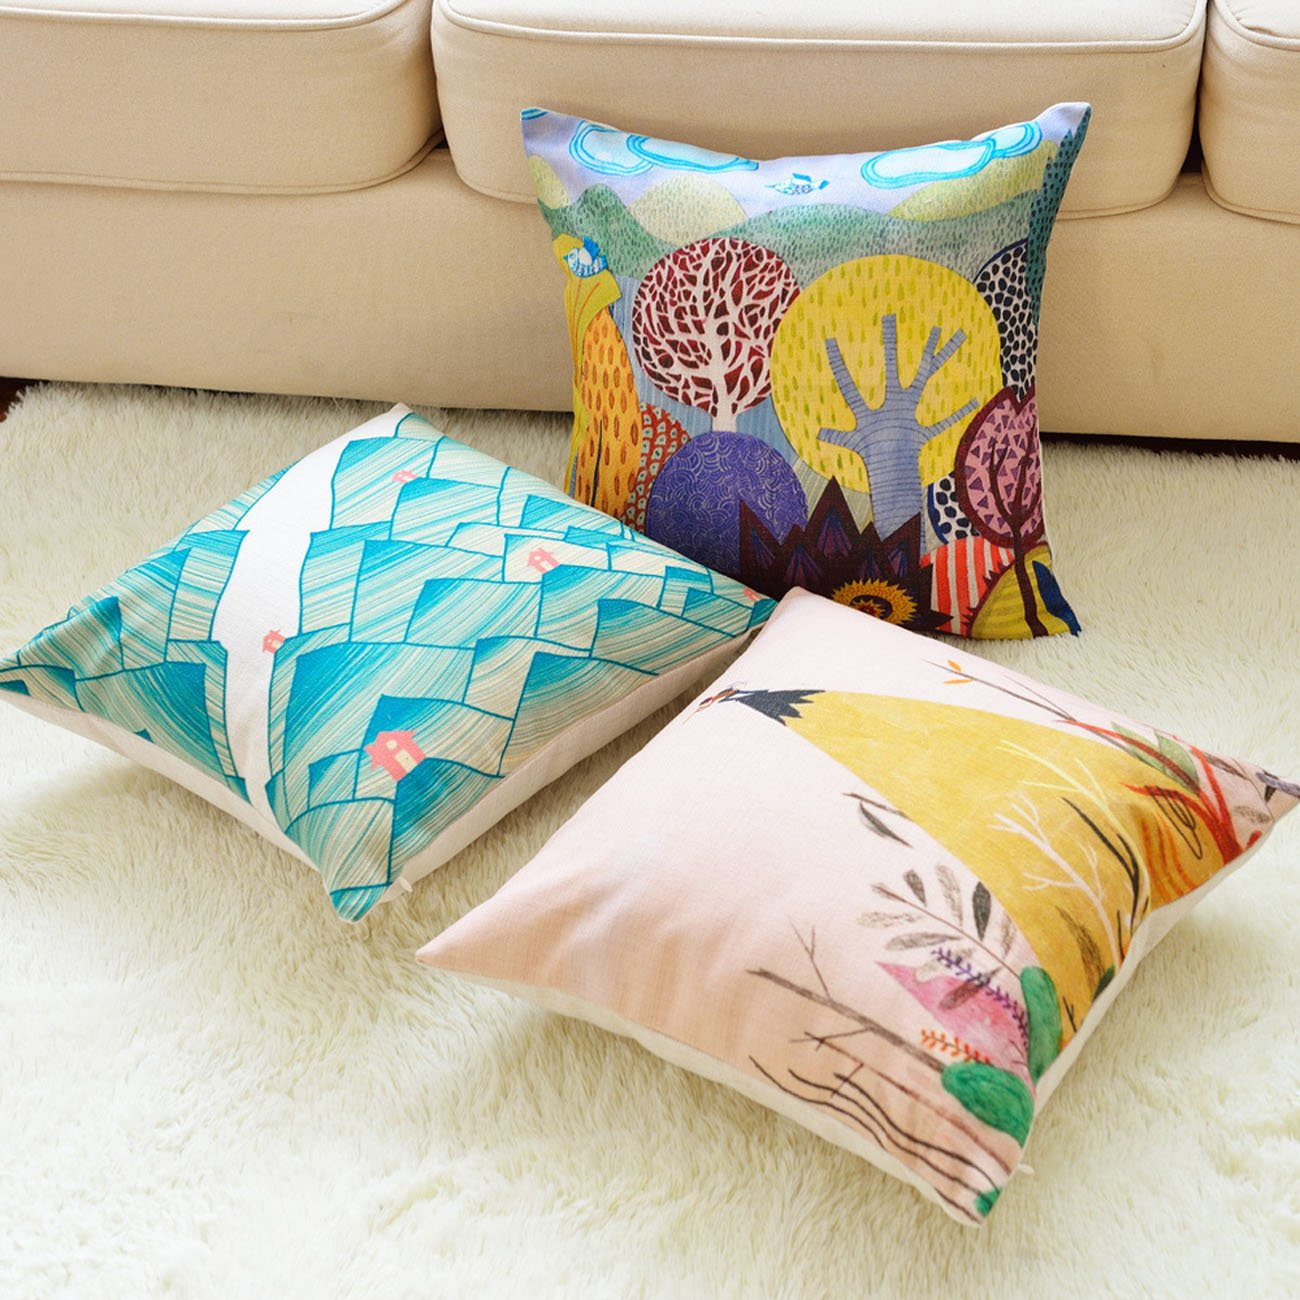 sykting Spring Pillow Covers 18 x 18 Decorative Cushion Cases Pack of 2 Sofa Pillow Shams Cotton Linen Colorful JWstyle1000